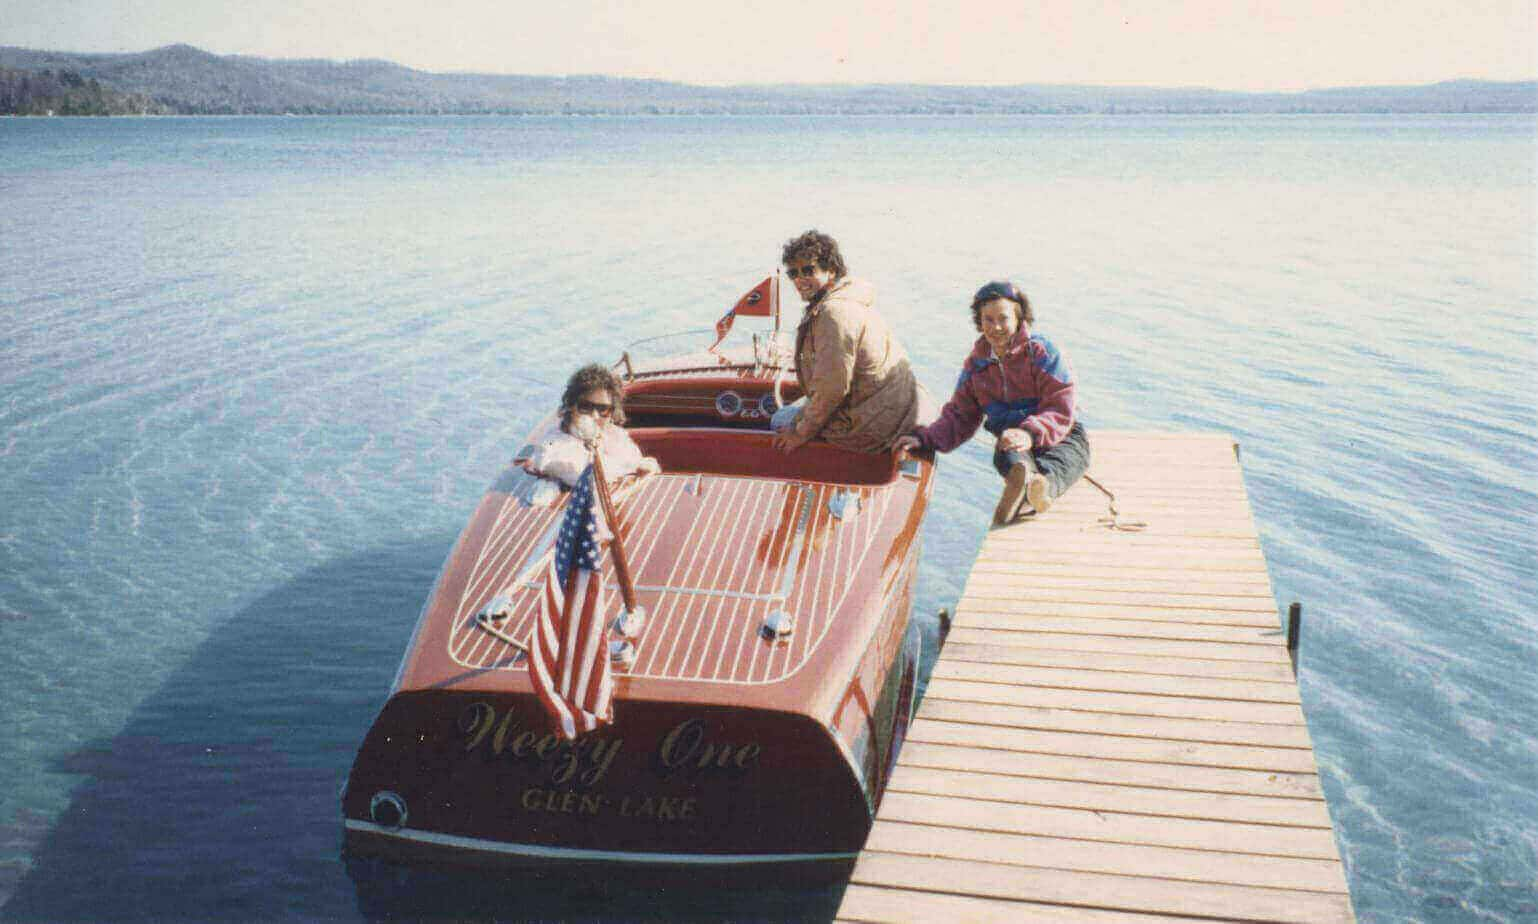 Hagerty Family Glen Lake on one of their wooden boats.